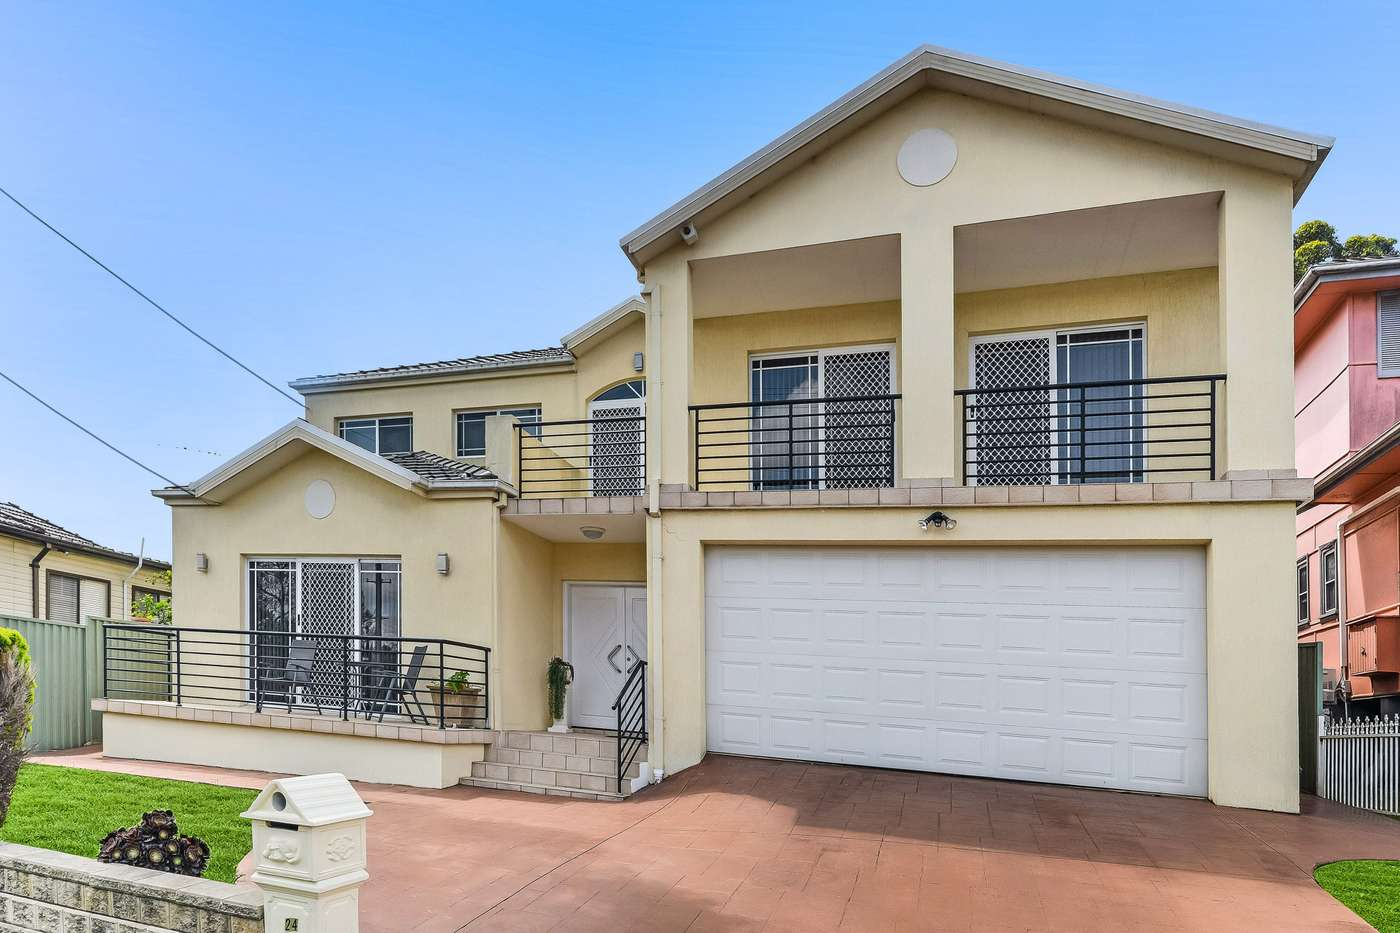 Main view of Homely house listing, 24 Arnold Avenue, Yagoona, NSW 2199